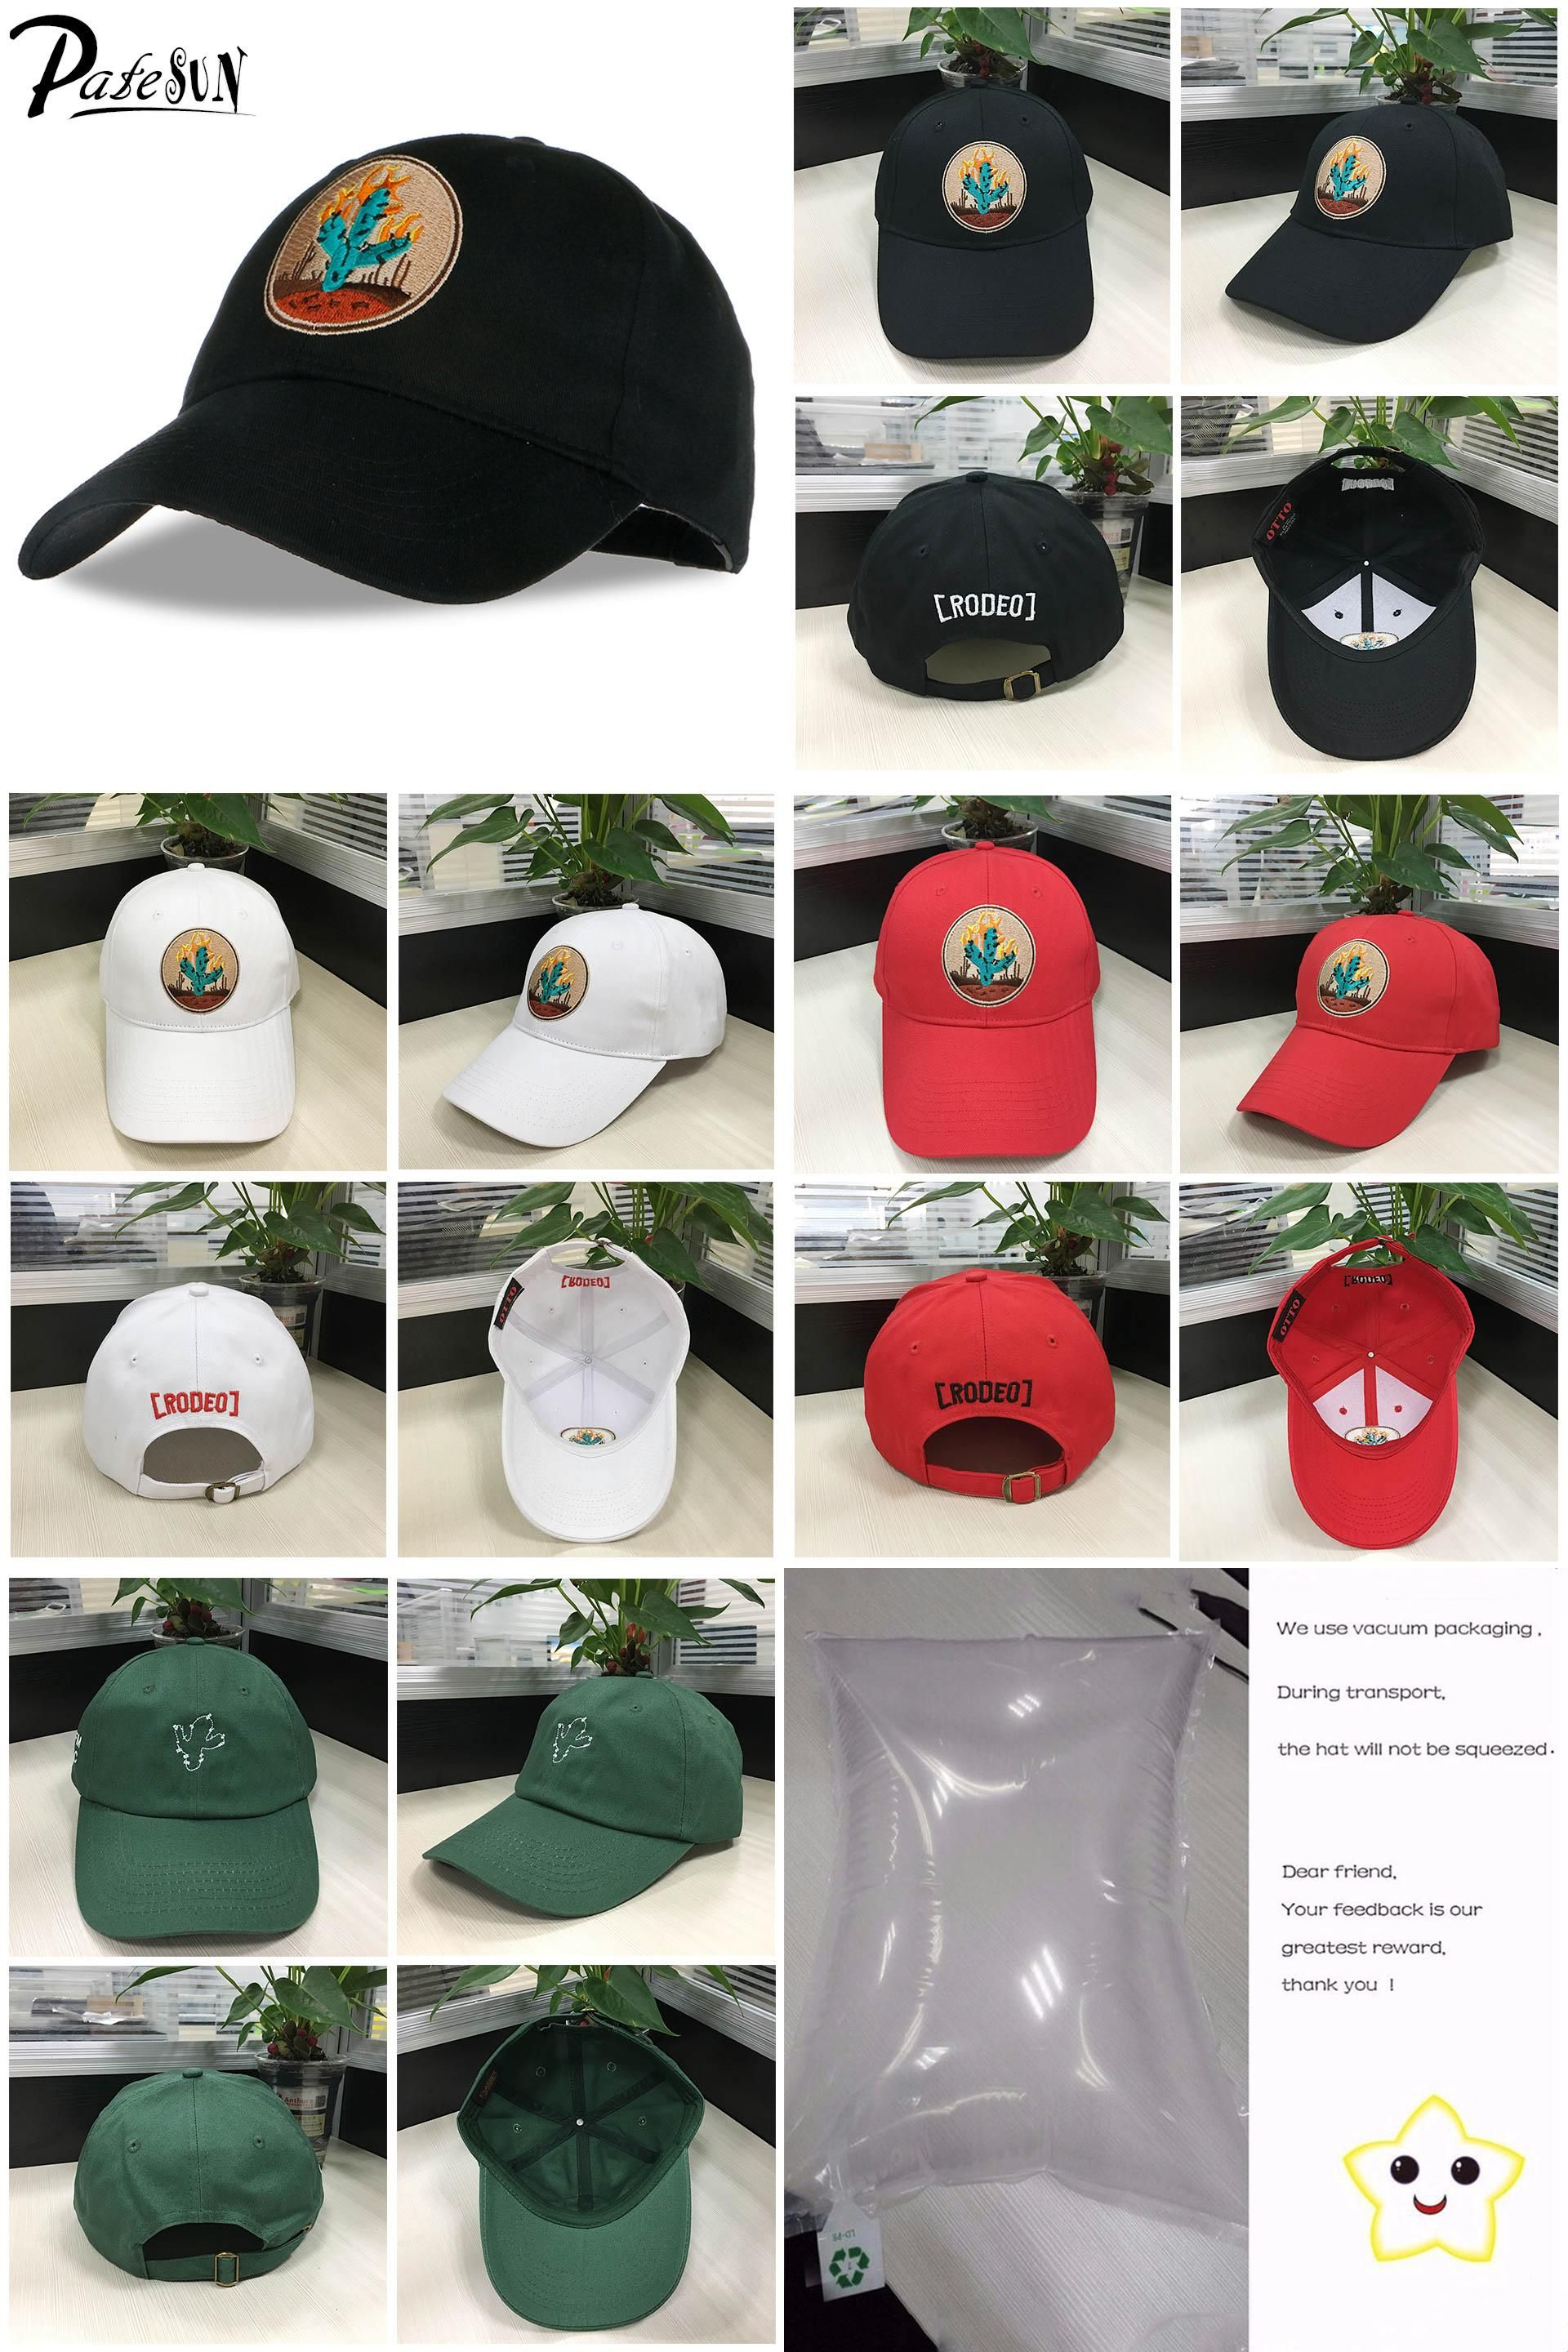 a1ee7b3072f  Visit to Buy  PATESUN 2017 Brand New Cactus Embroidered Baseball Cap Black  6 Panel